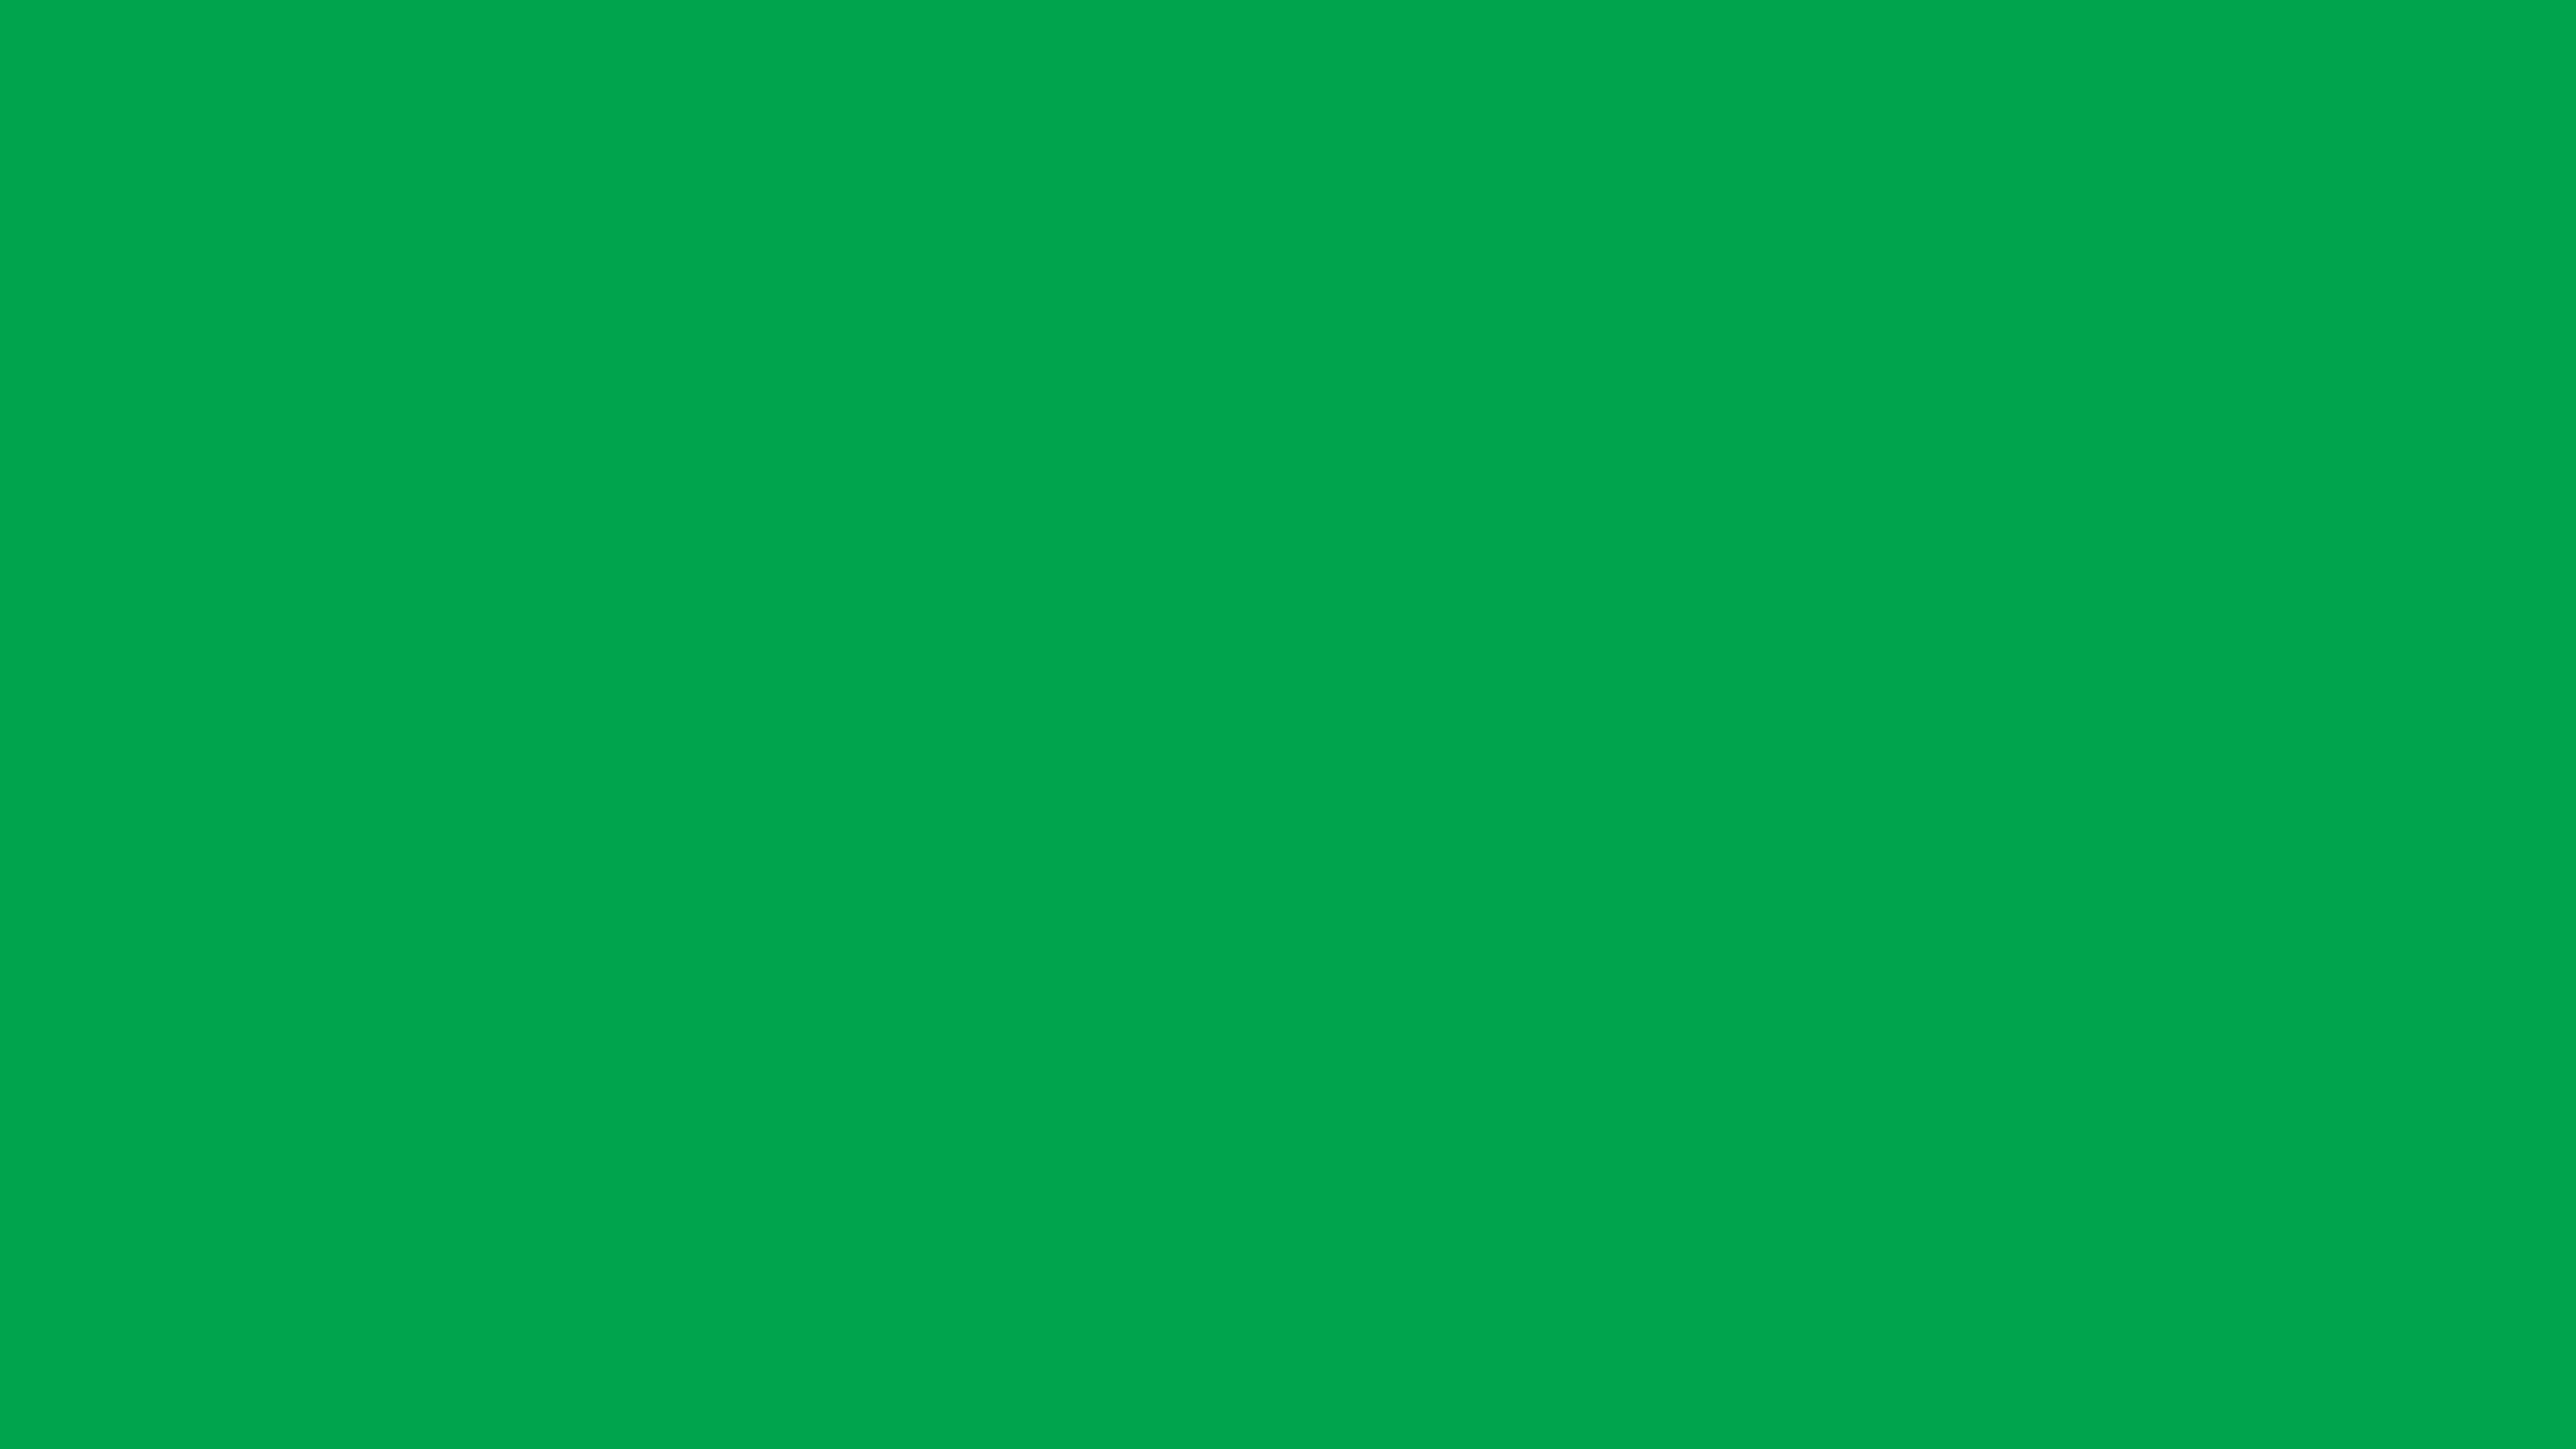 3840x2160 Green Pigment Solid Color Background